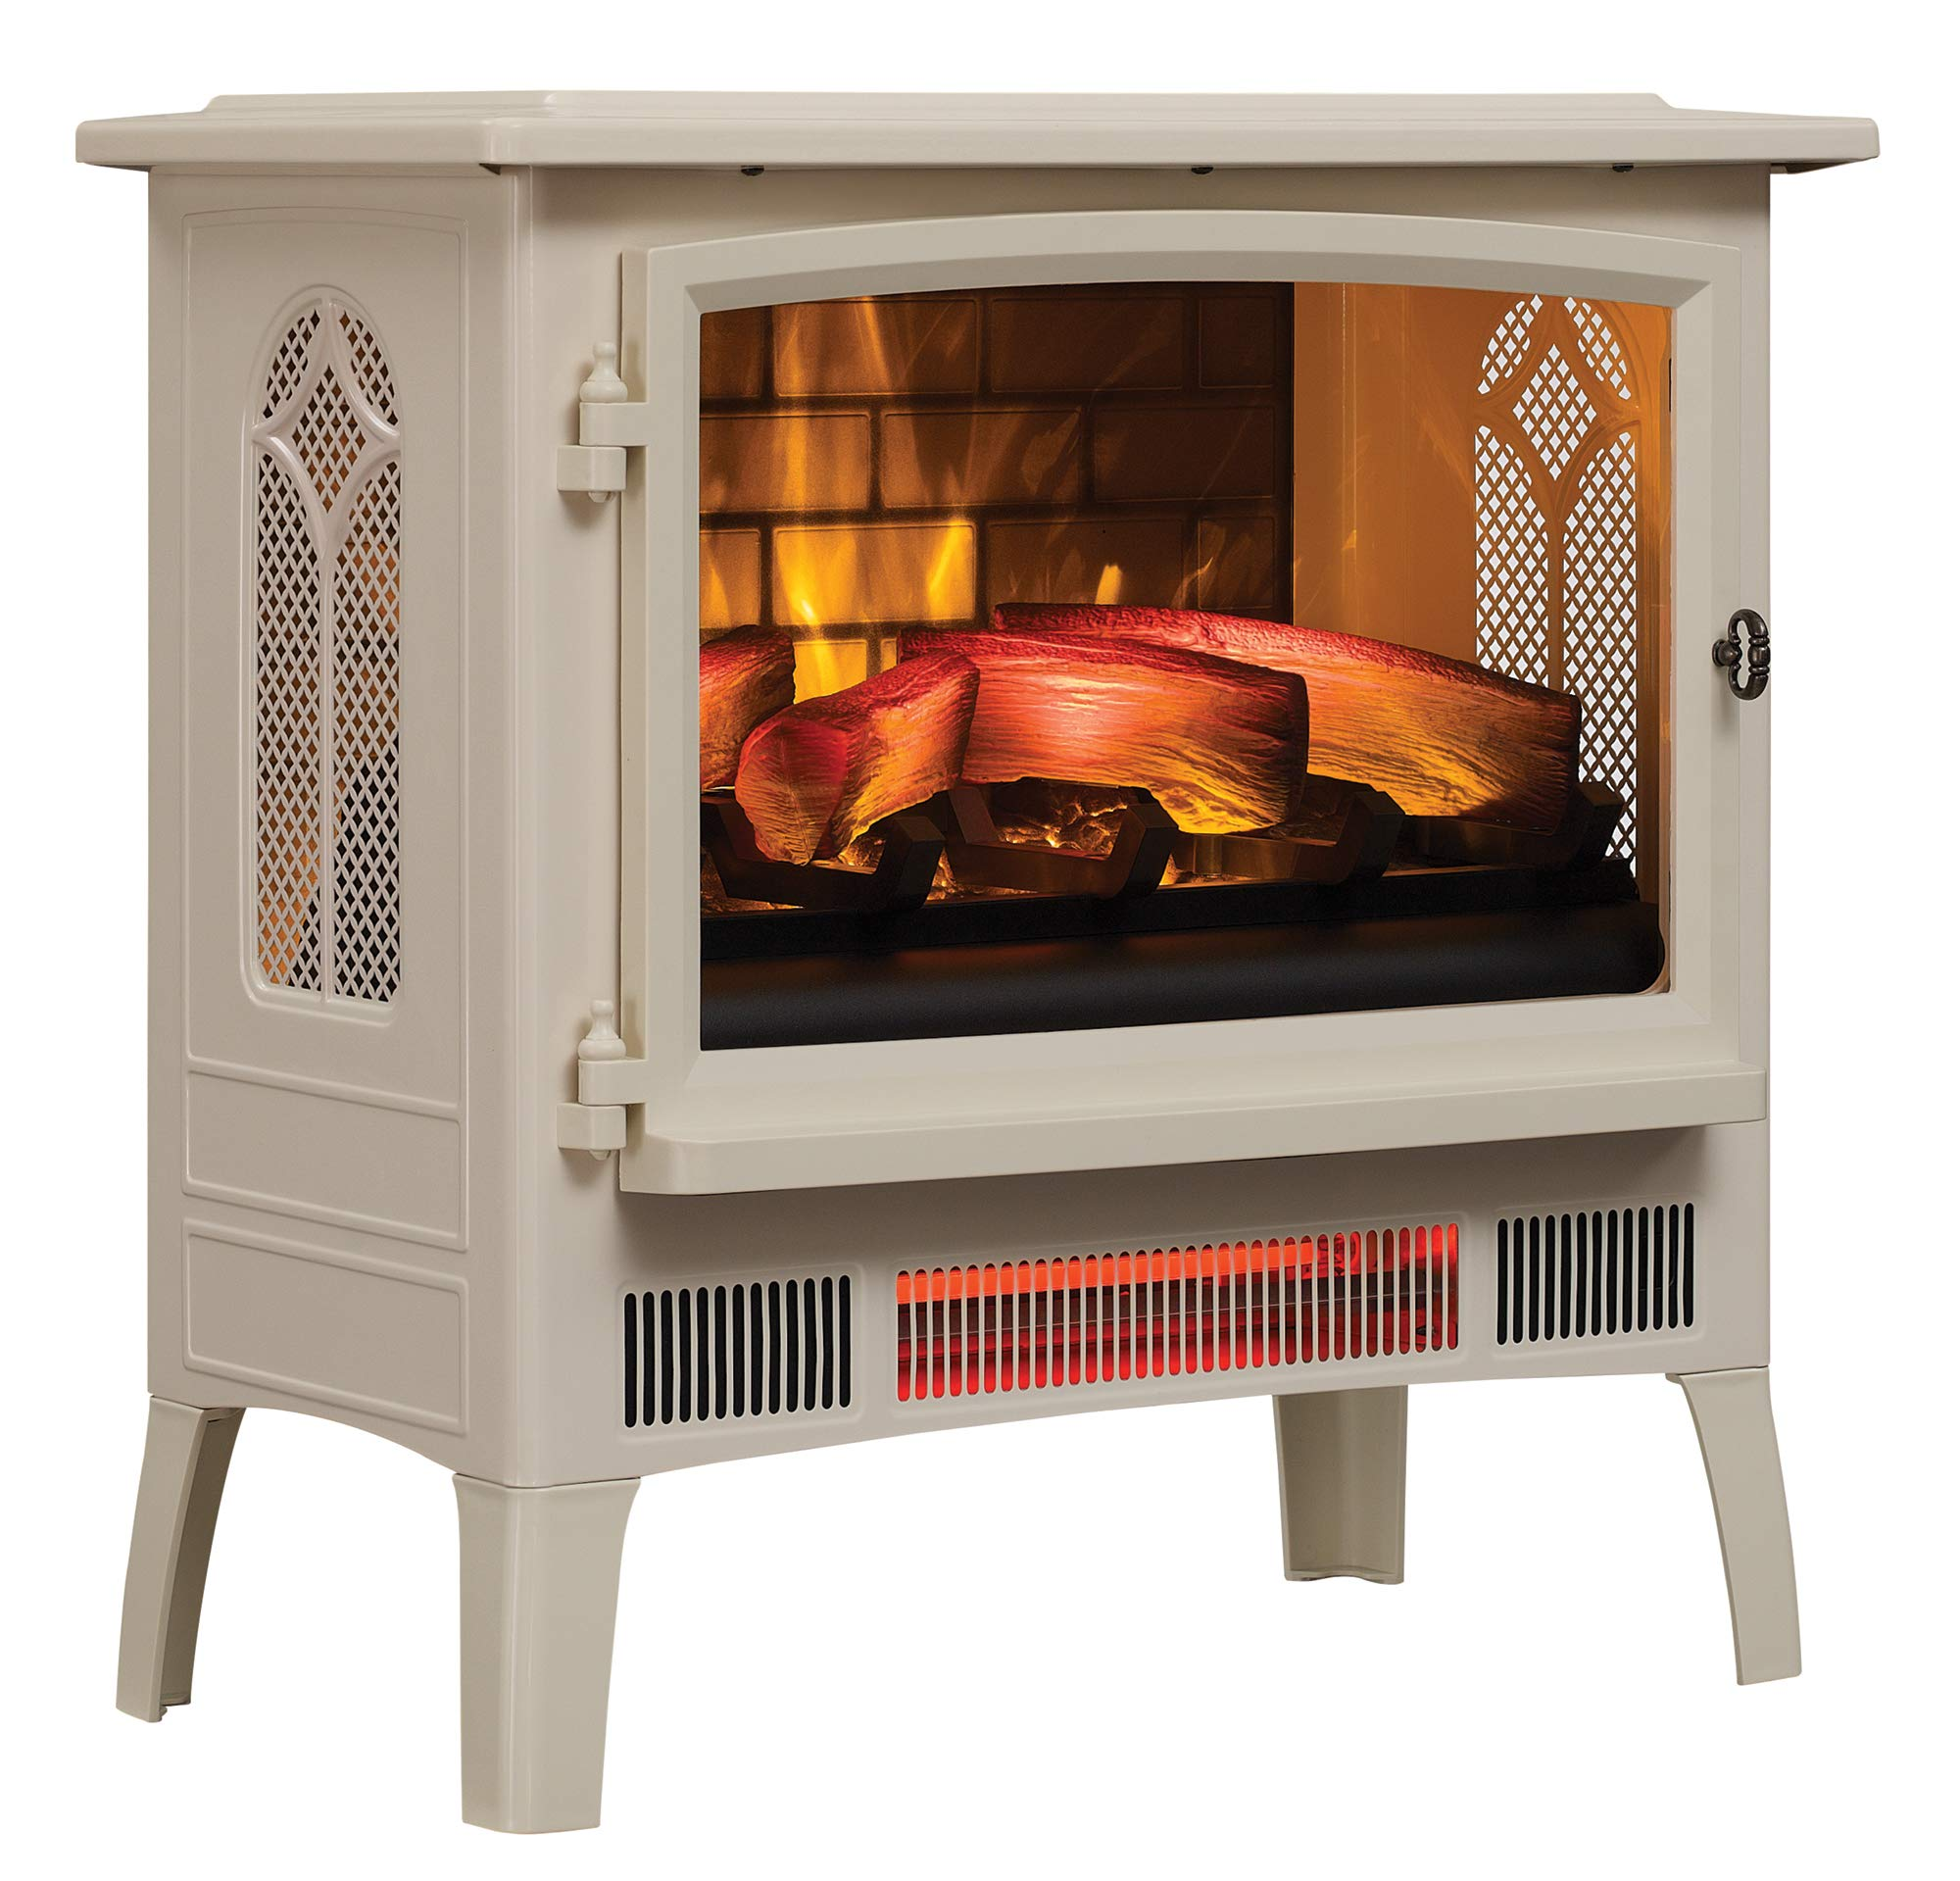 Duraflame Electric Infragen Stove (Cream) by Duraflame Electric